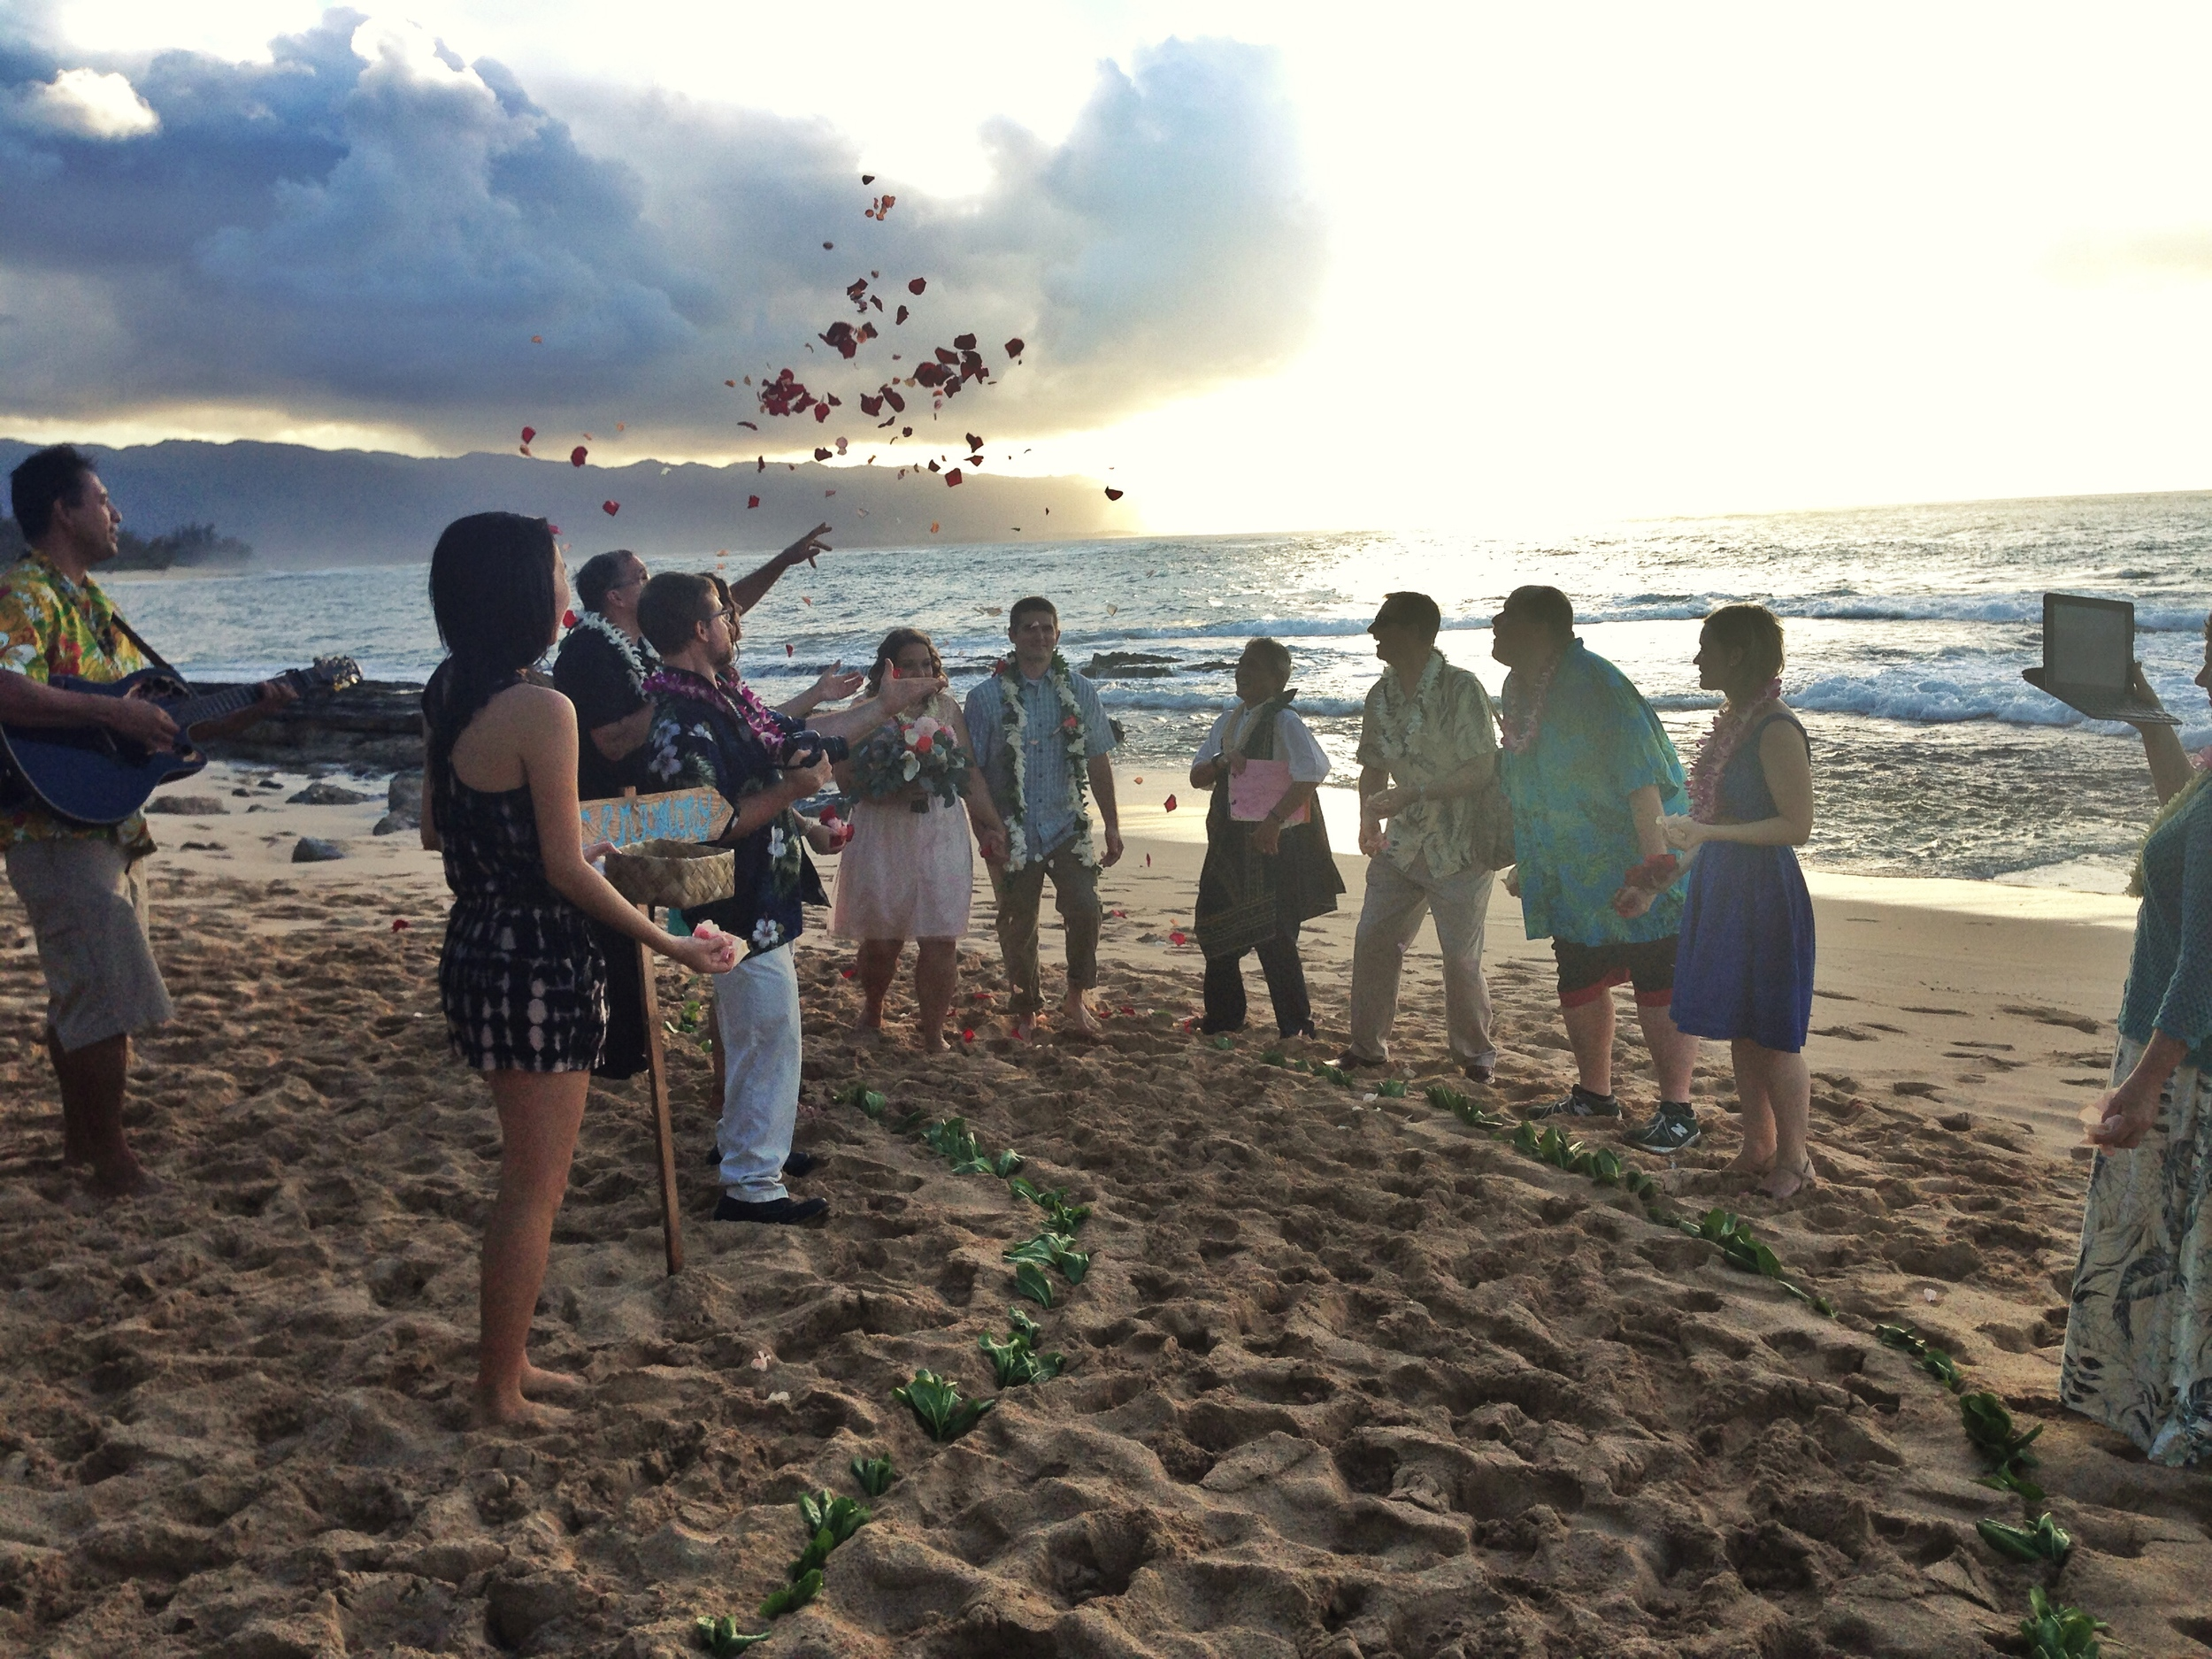 jacqueline-caleb-hawaii-north-shore-wedding-sunset-say-i-do